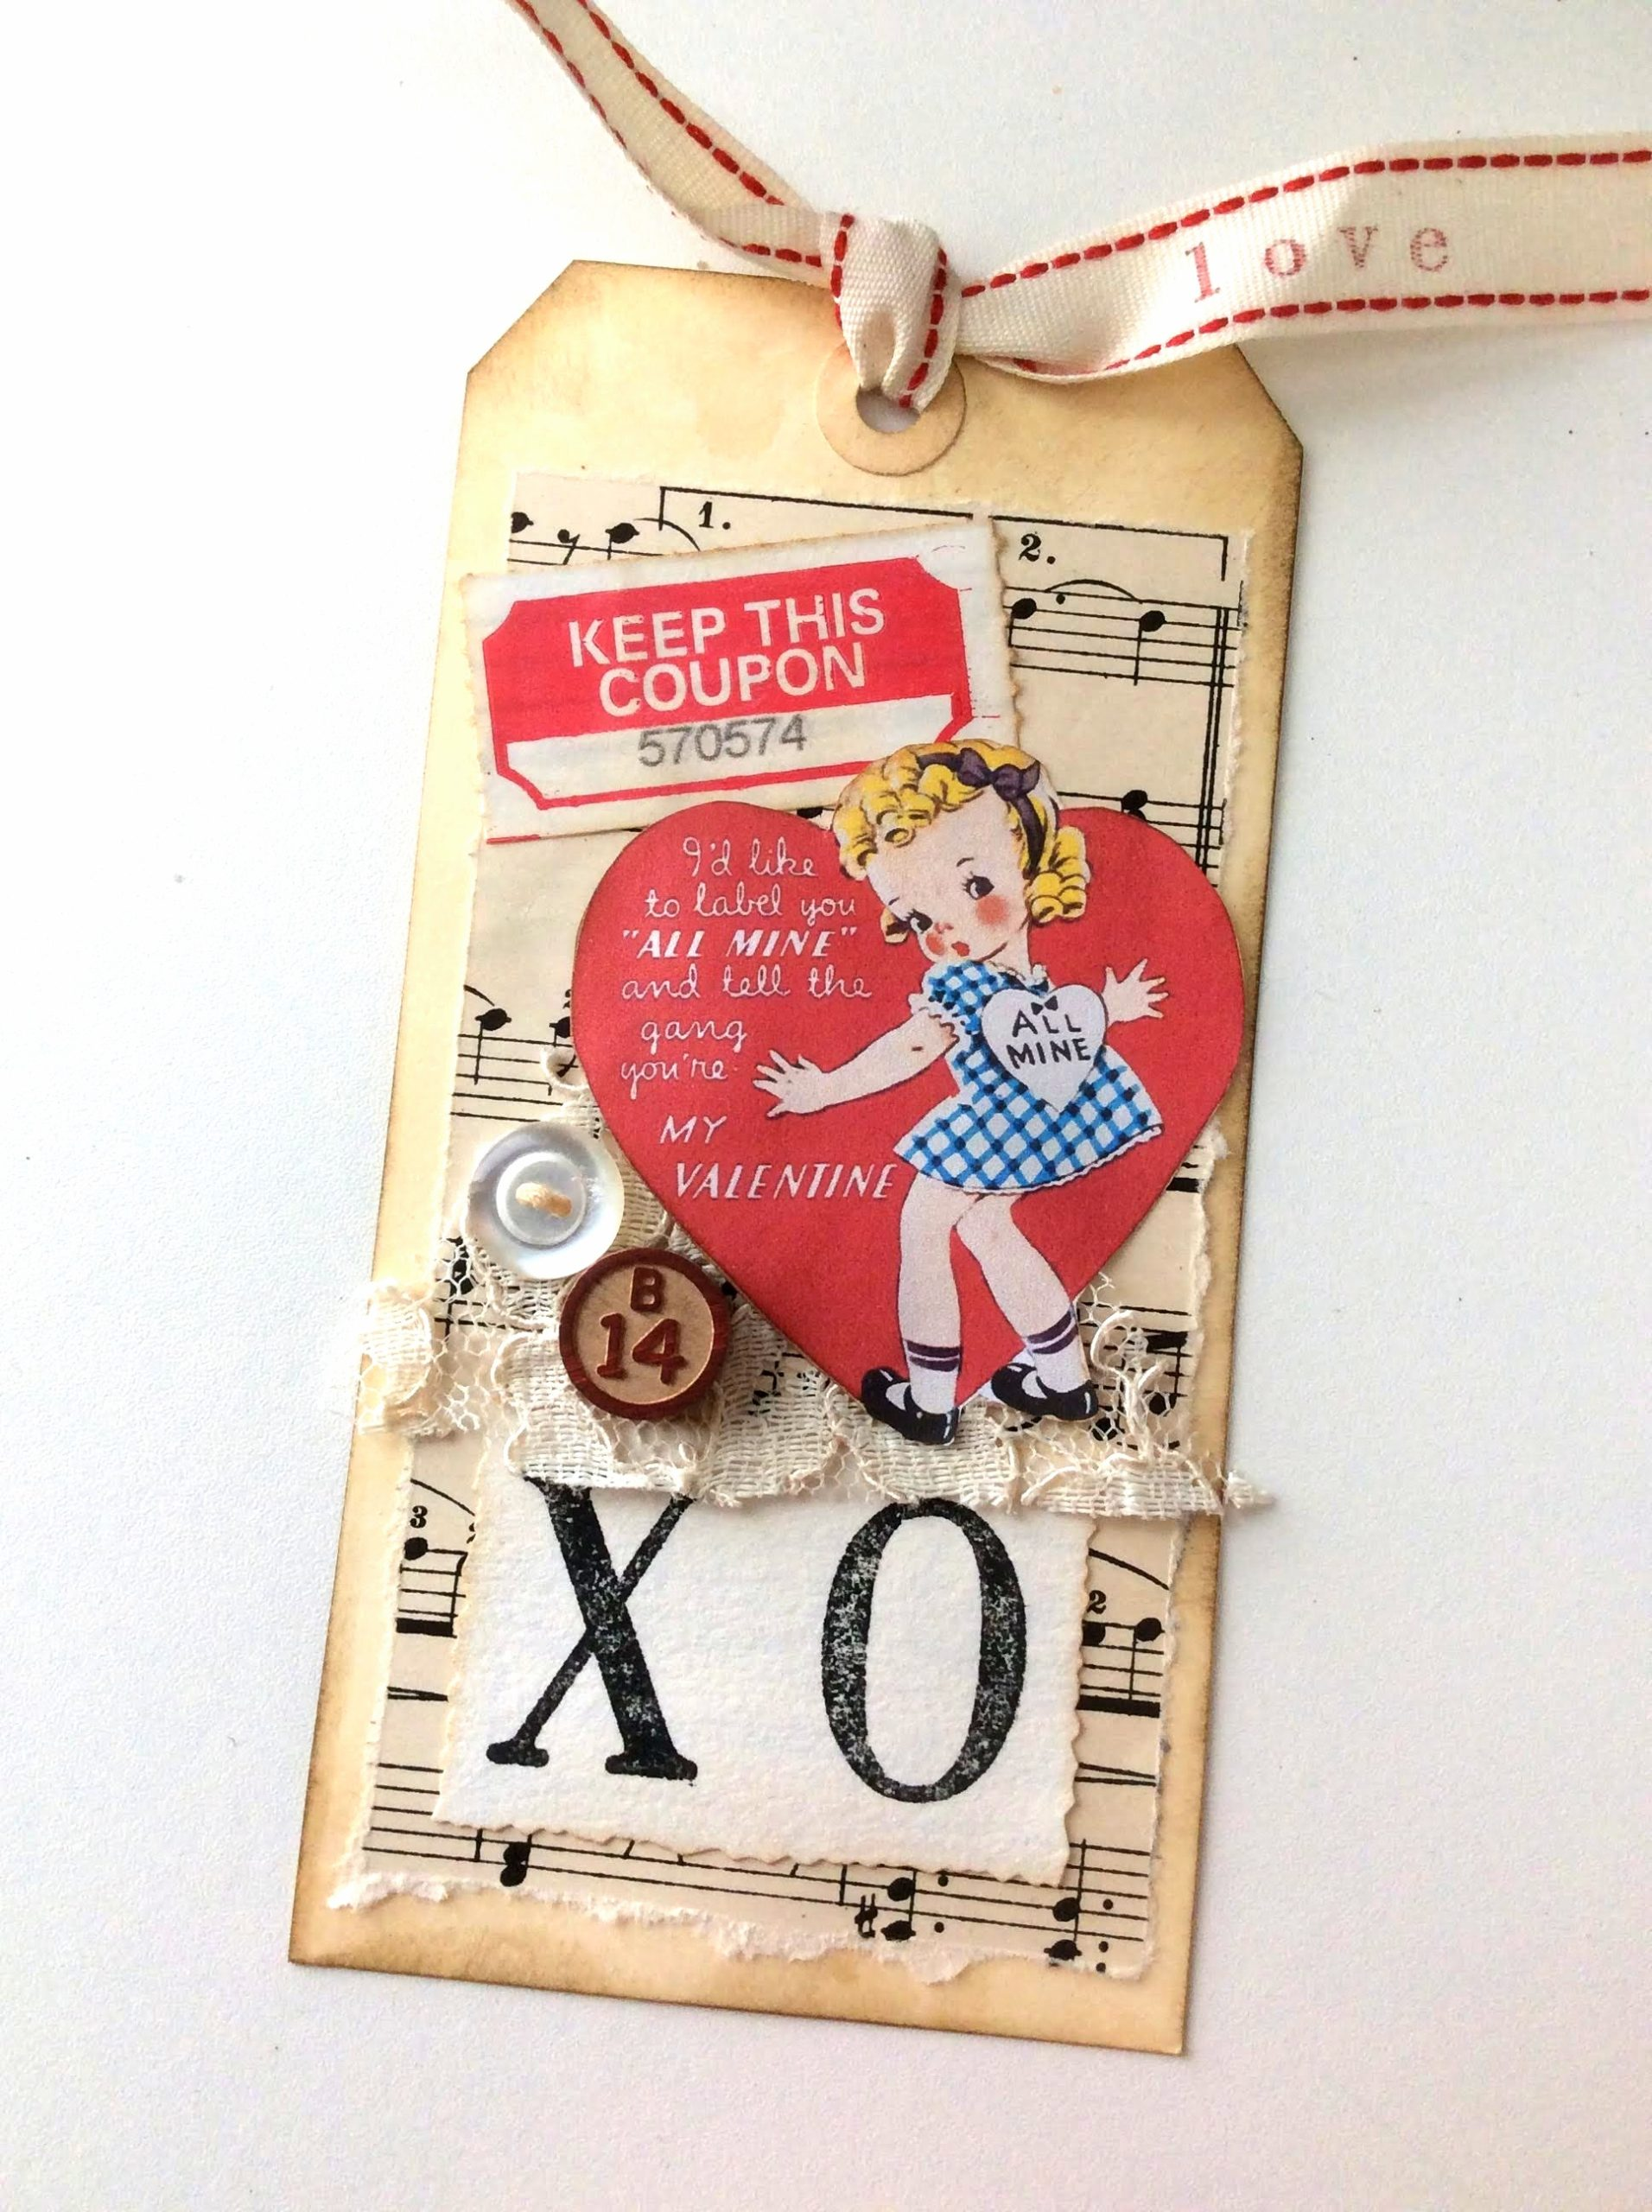 Valentine's Day card tag by Fresh Vintage by Lisa S, featured on DIY Salvaged Junk Projects 564 on Funky Junk!